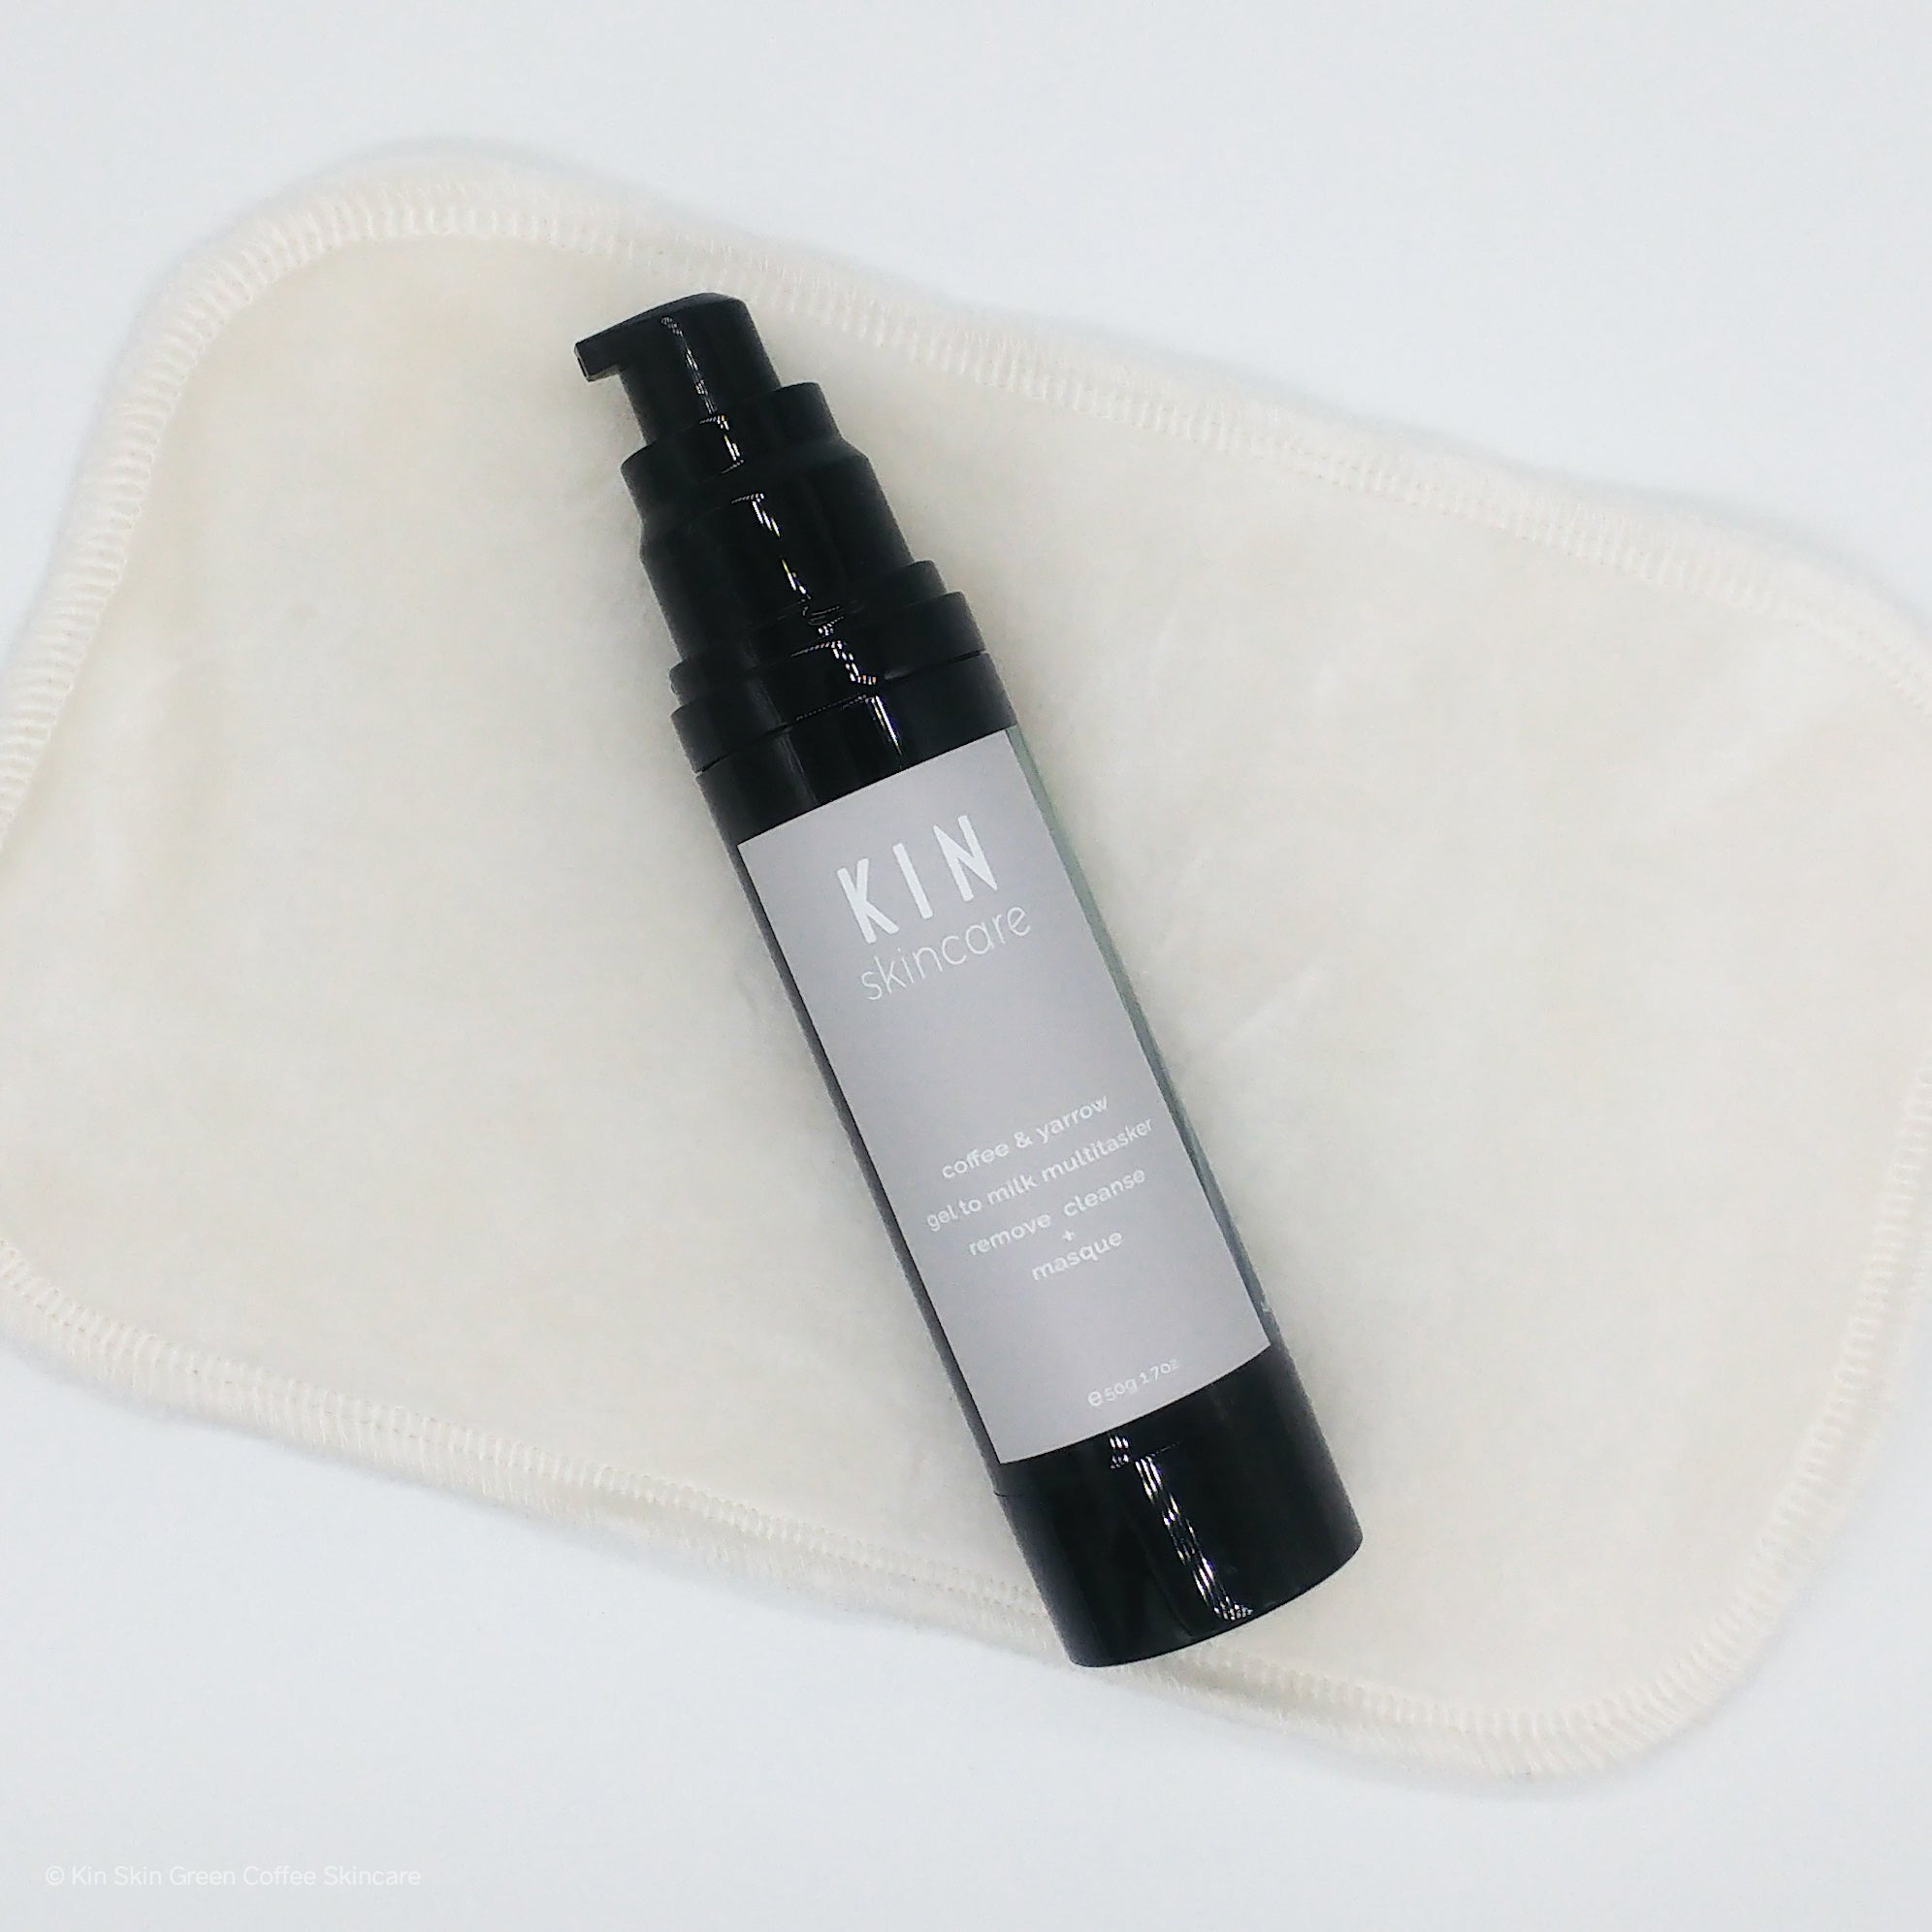 Coffee + Yarrow Gel-to-Milk | Cleanser, Mask & Makeup Remover. Bamboo Cleansing Cloth Included